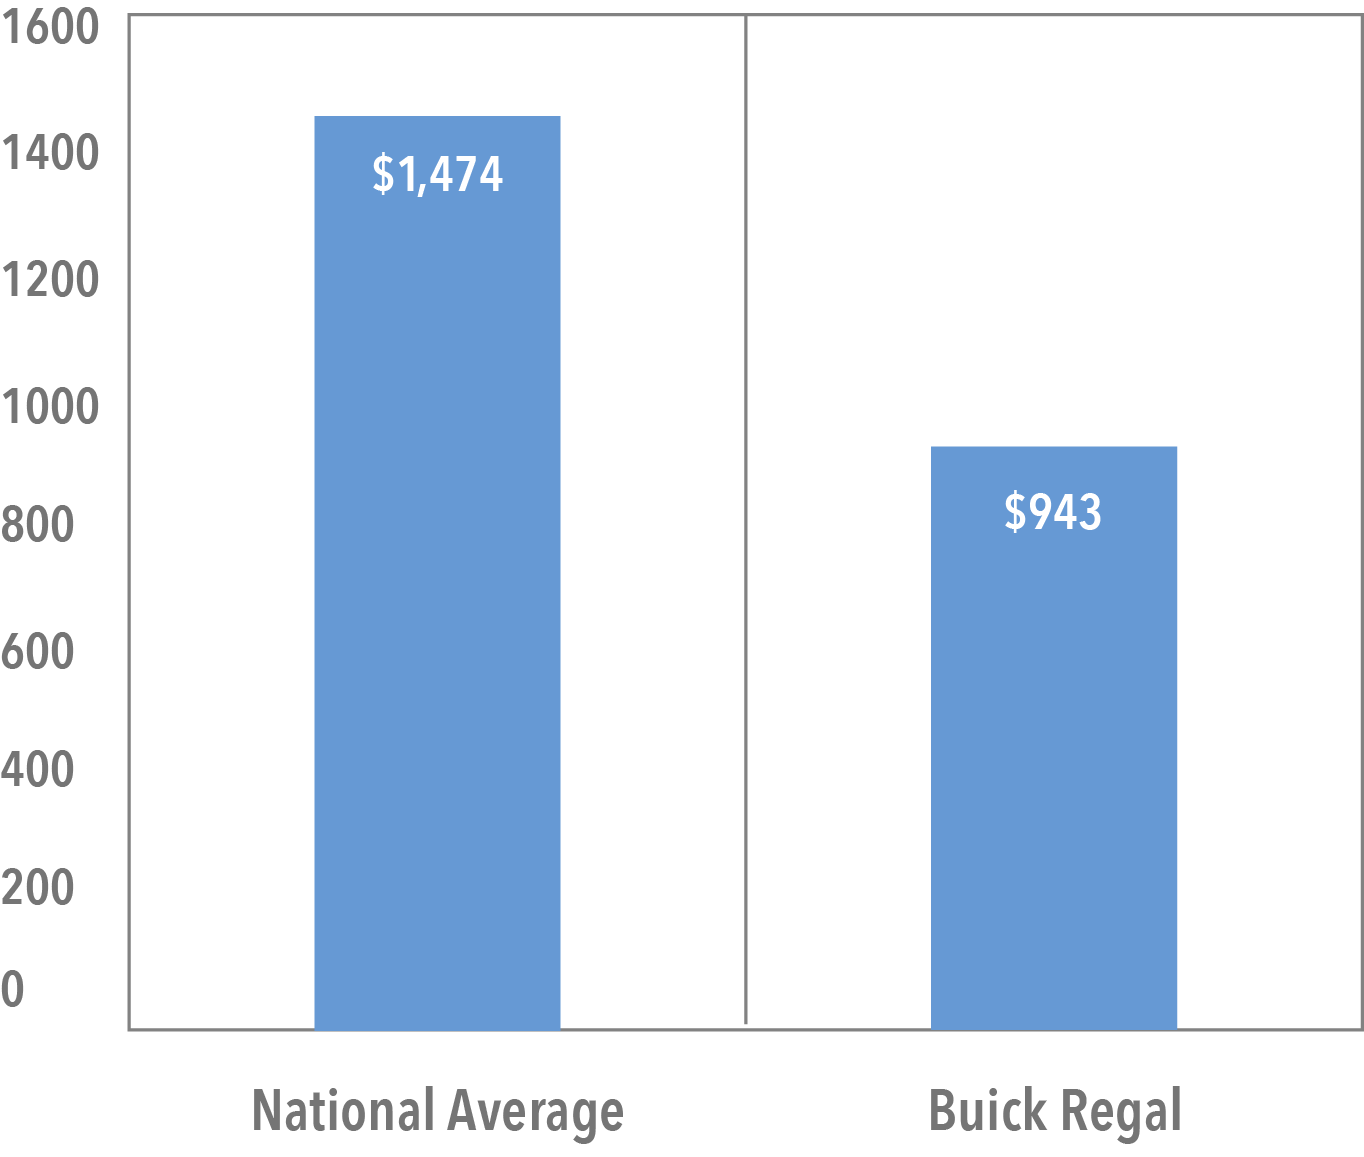 Average Cost of Regal Buick